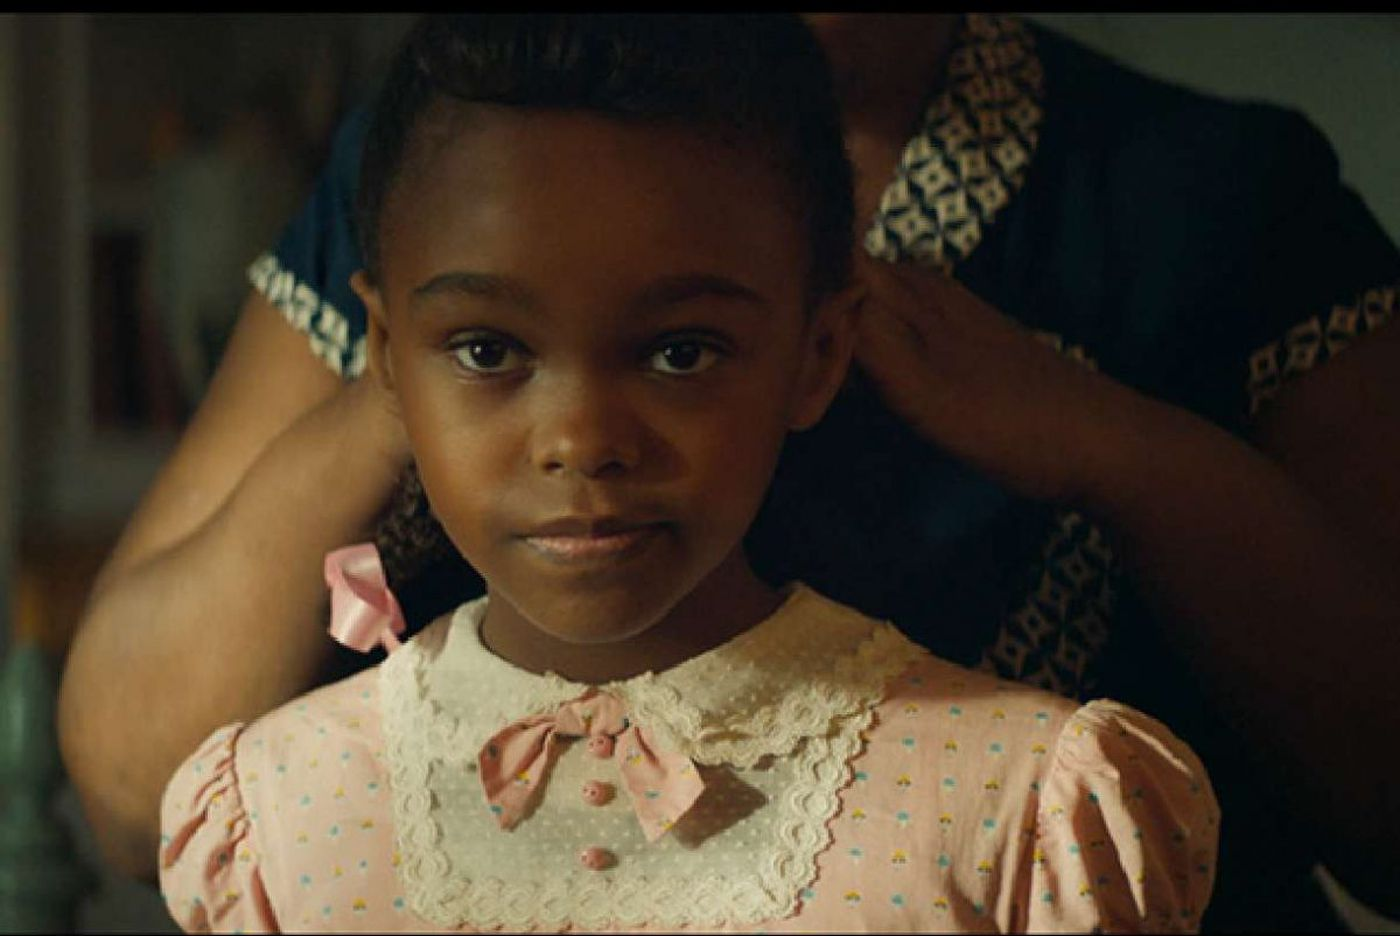 Reaction to Procter & Gamble ad about racial bias: 'The cost of taking a stand'